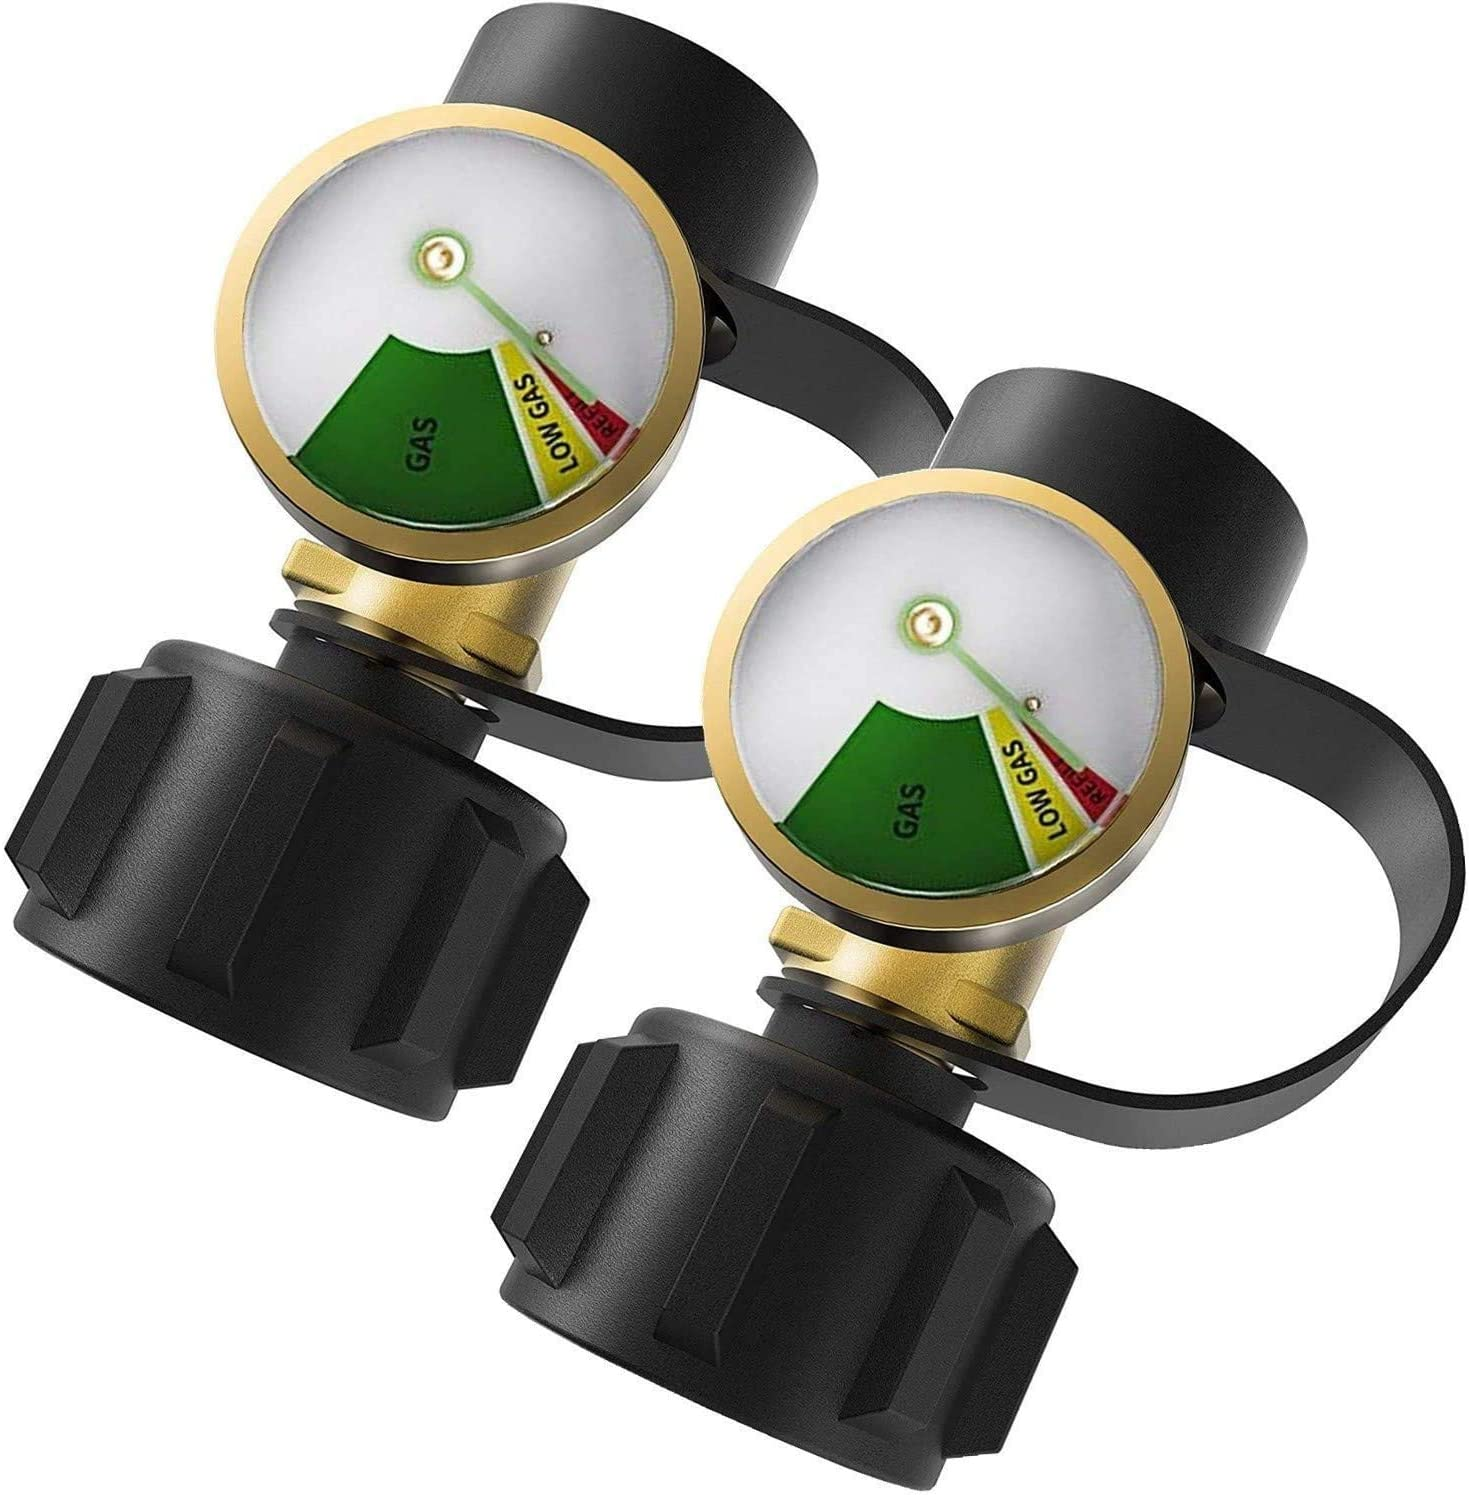 DOZYANT Propane Tank Gauge Level Indicator Leak Detector Gas Pressure Meter Universal for RV Camper, Cylinder, BBQ Gas Grill, Heater and More Appliances-Type 1 Connection - 2 Pack